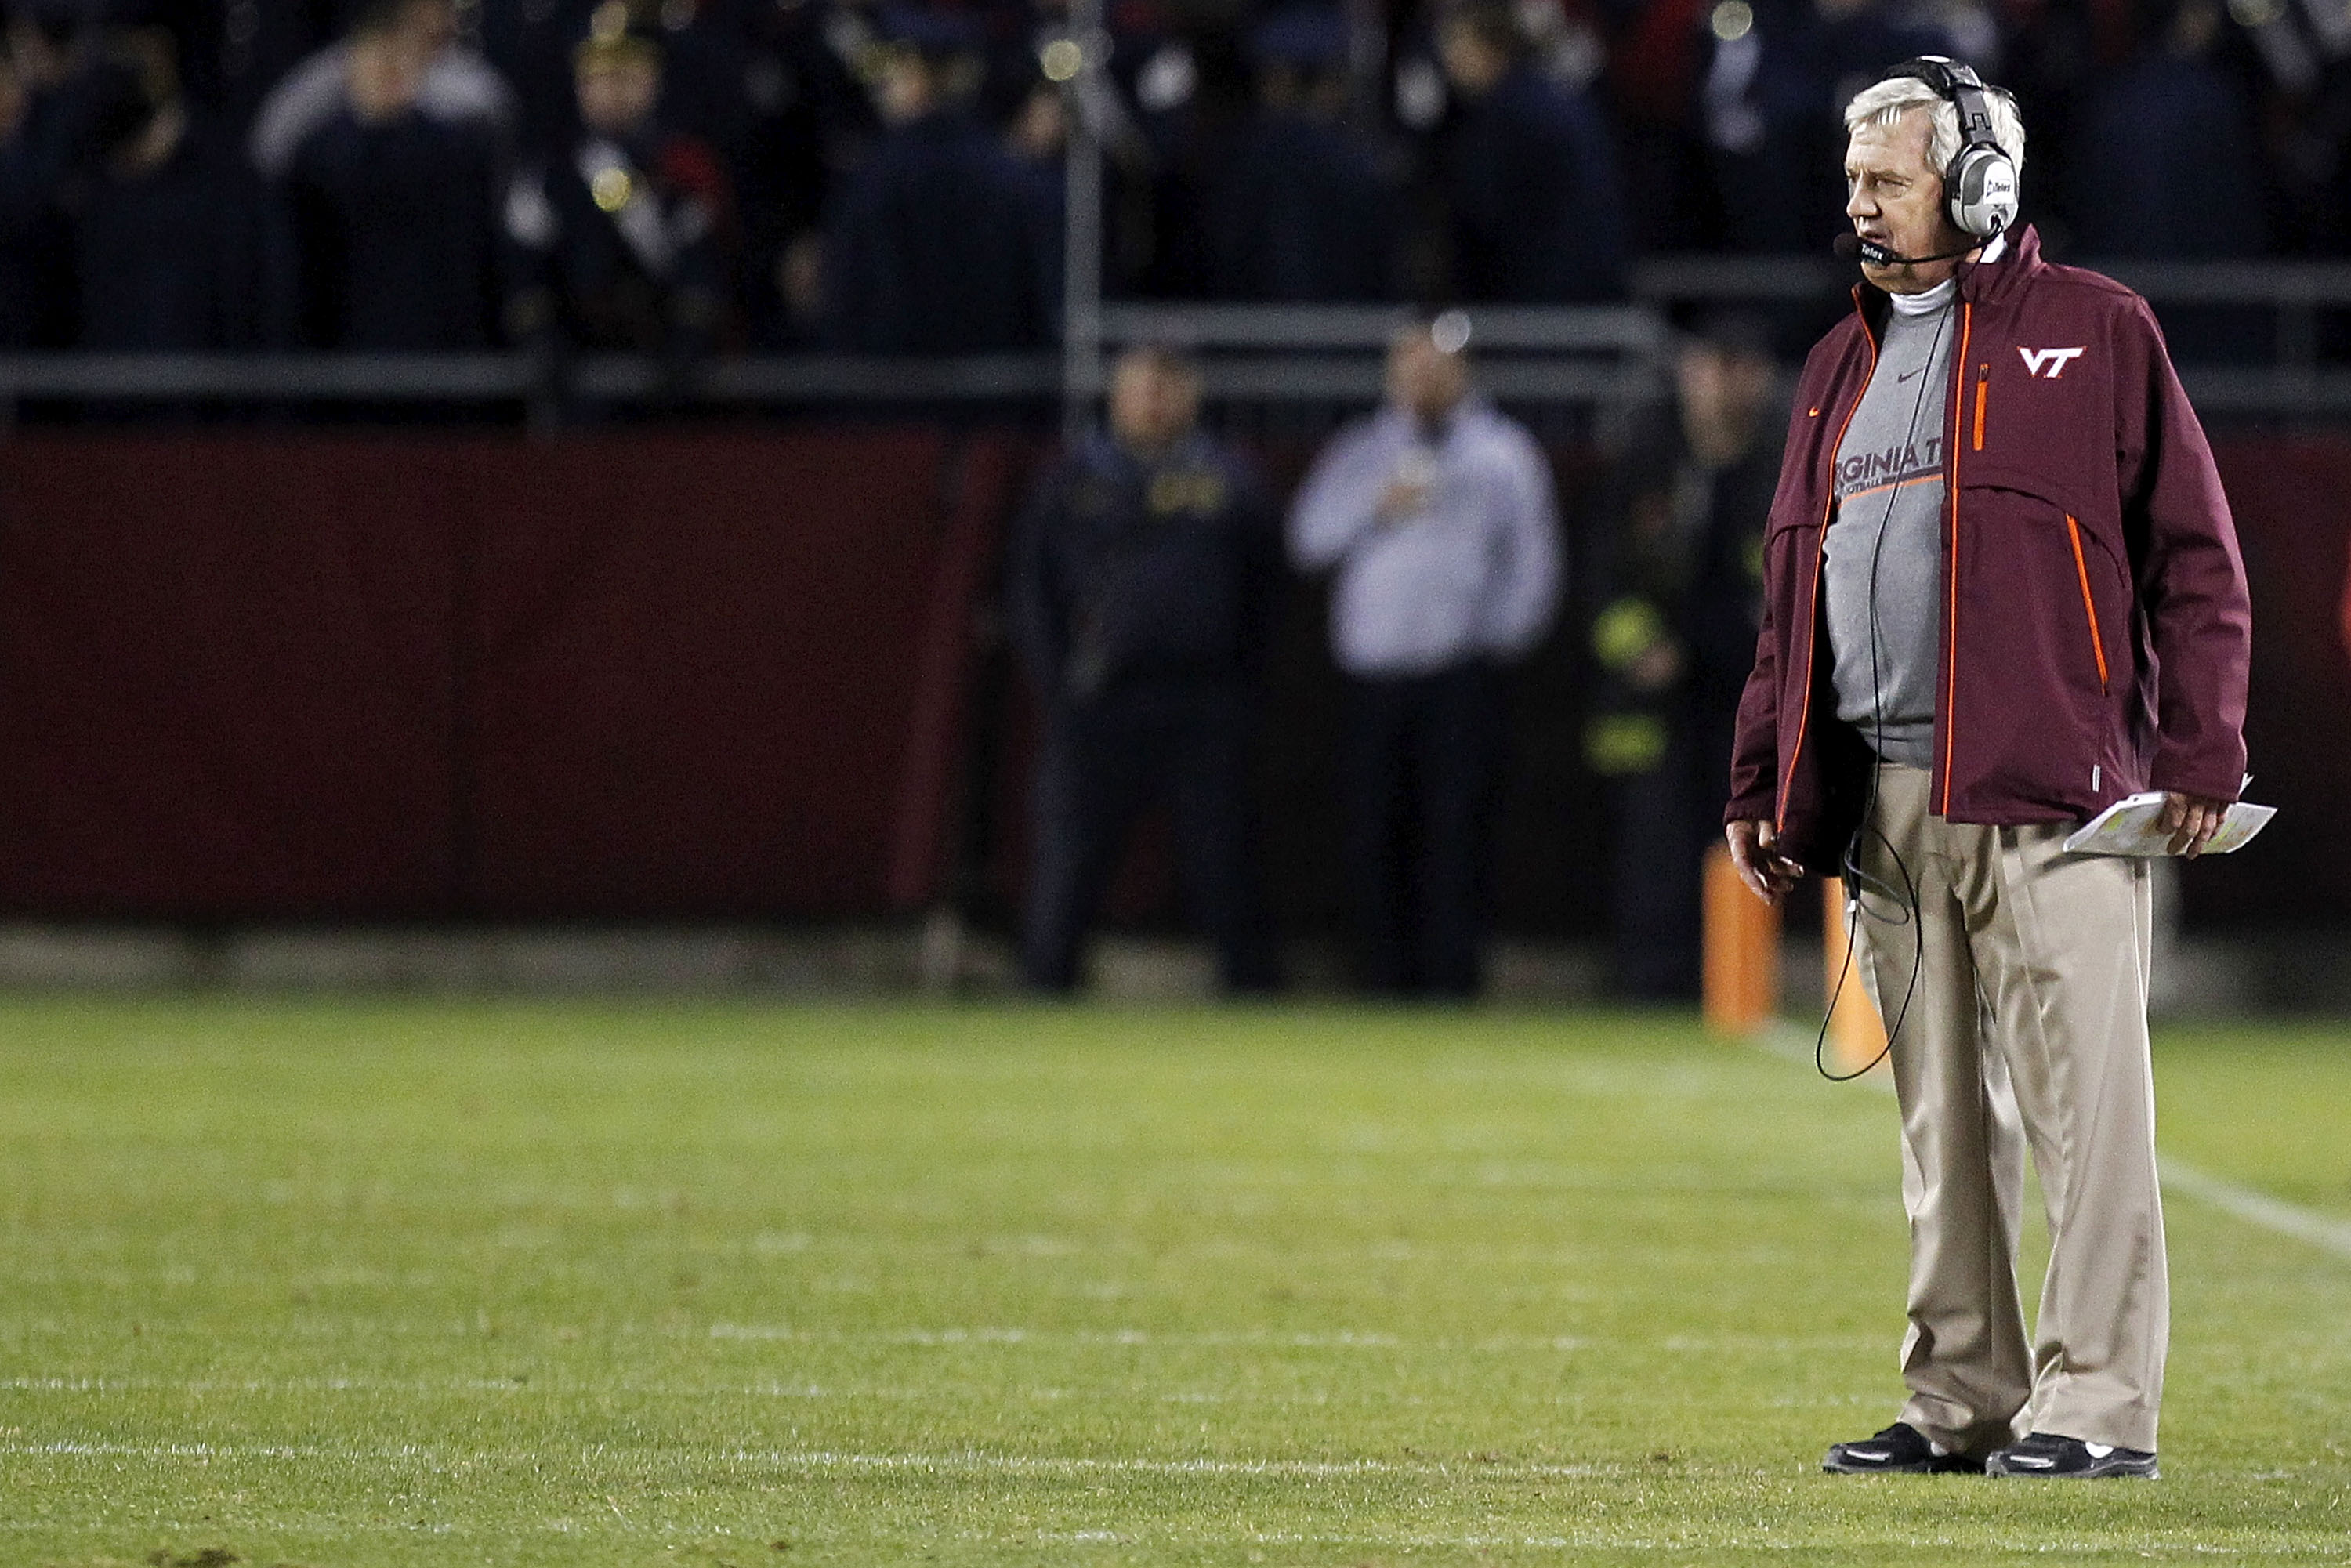 BLACKSBURG, VA - NOVEMBER 04: Head coach Frank Beamer of the Virginia Tech Hokies watches from the sidelines against the Georgia Tech Yellow Jackets at Lane Stadium on November 4, 2010 in Blacksburg, Virginia.  (Photo by Geoff Burke/Getty Images)